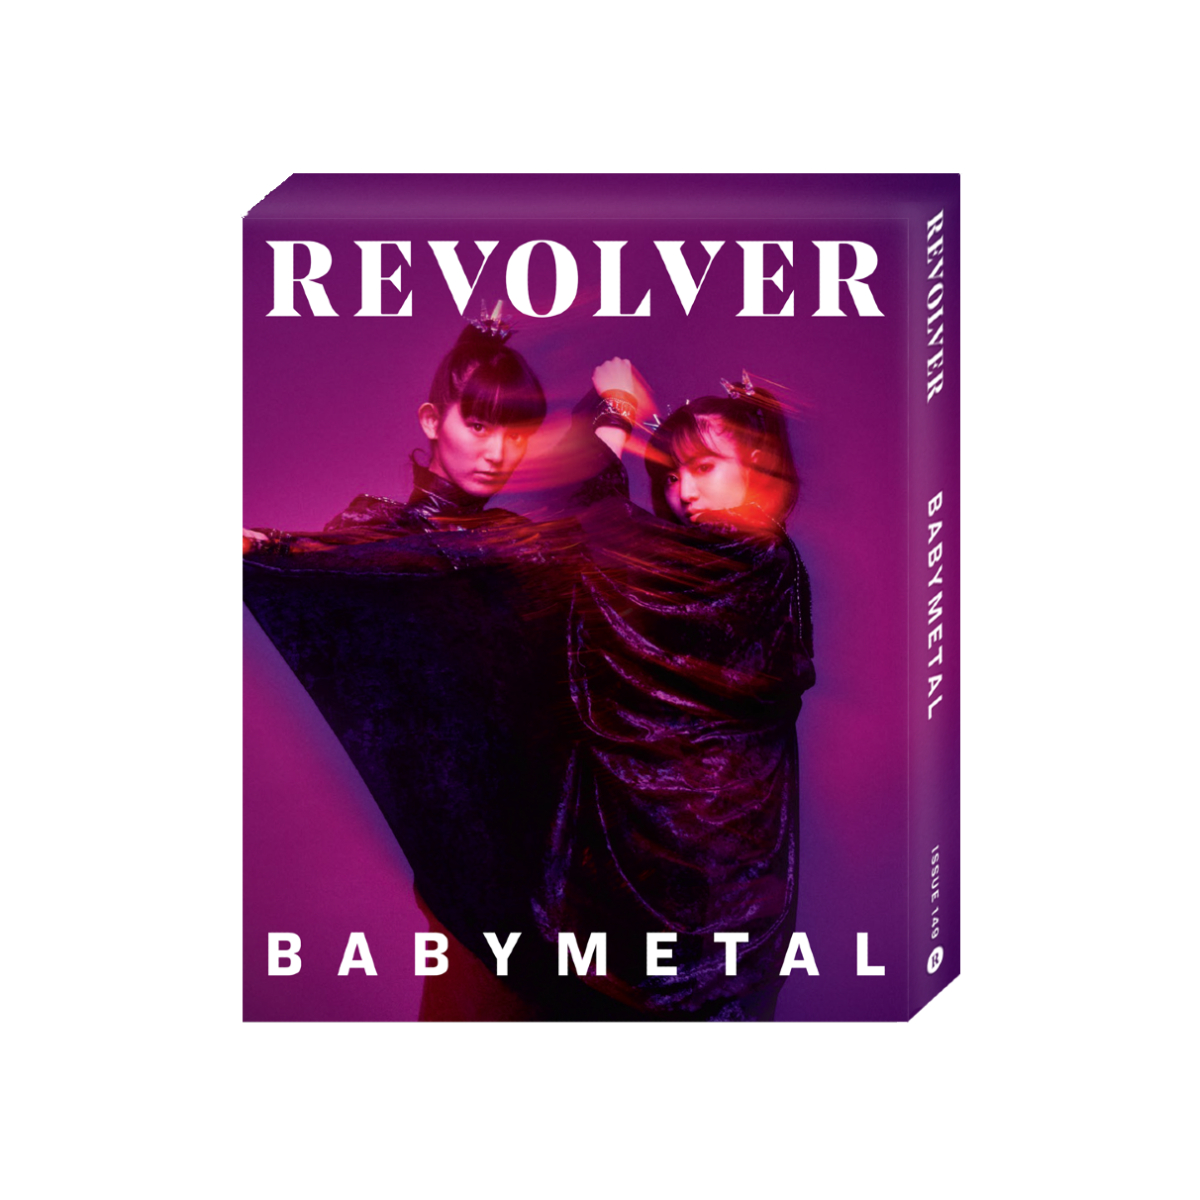 OCT/NOV 2019 ISSUE FEATURING BABYMETAL - BOX SET